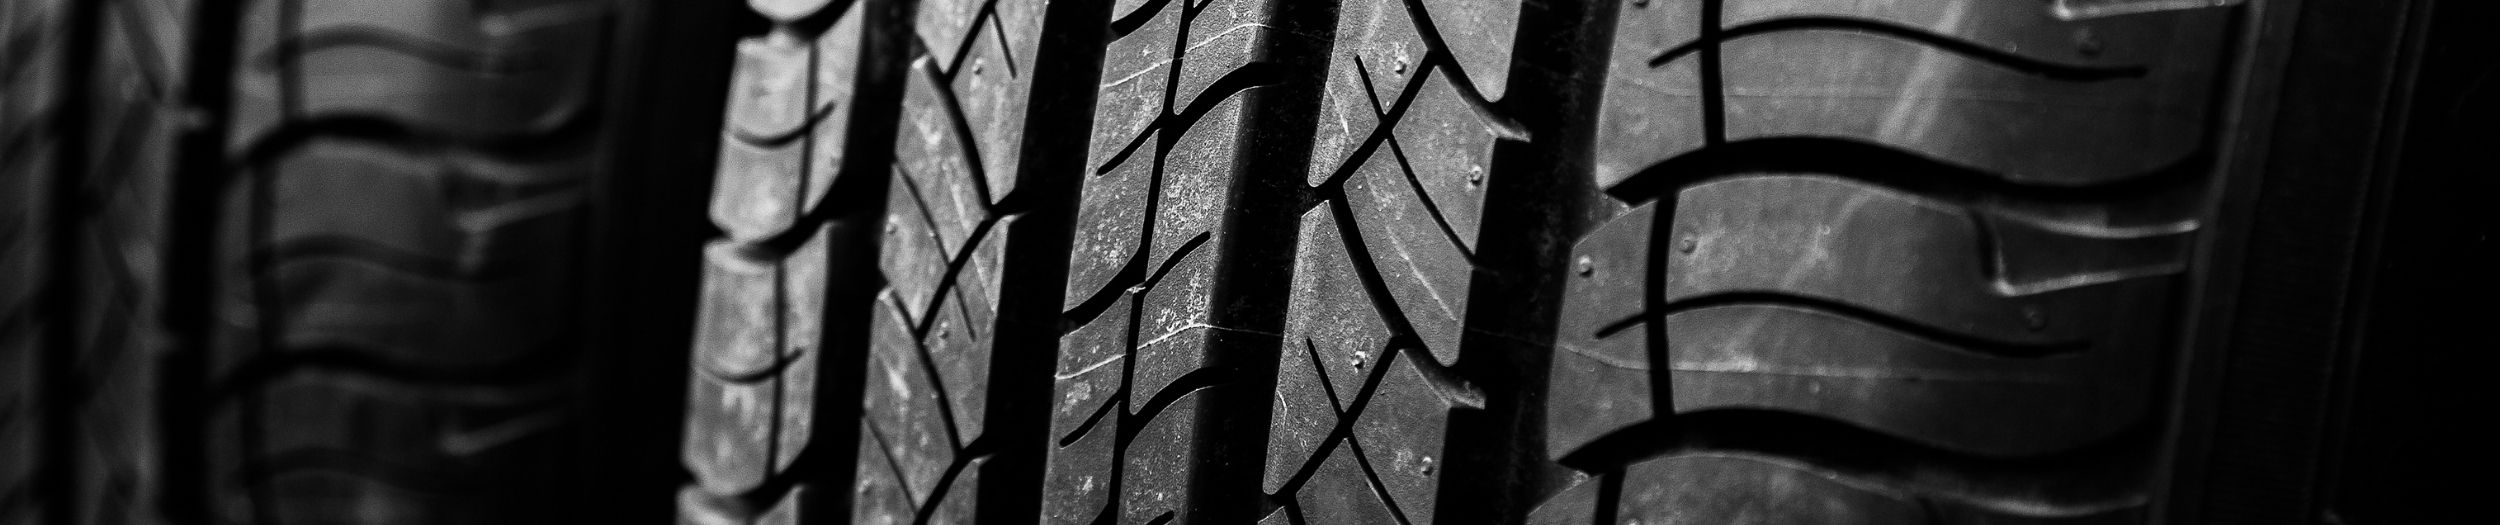 Close up of car tyres